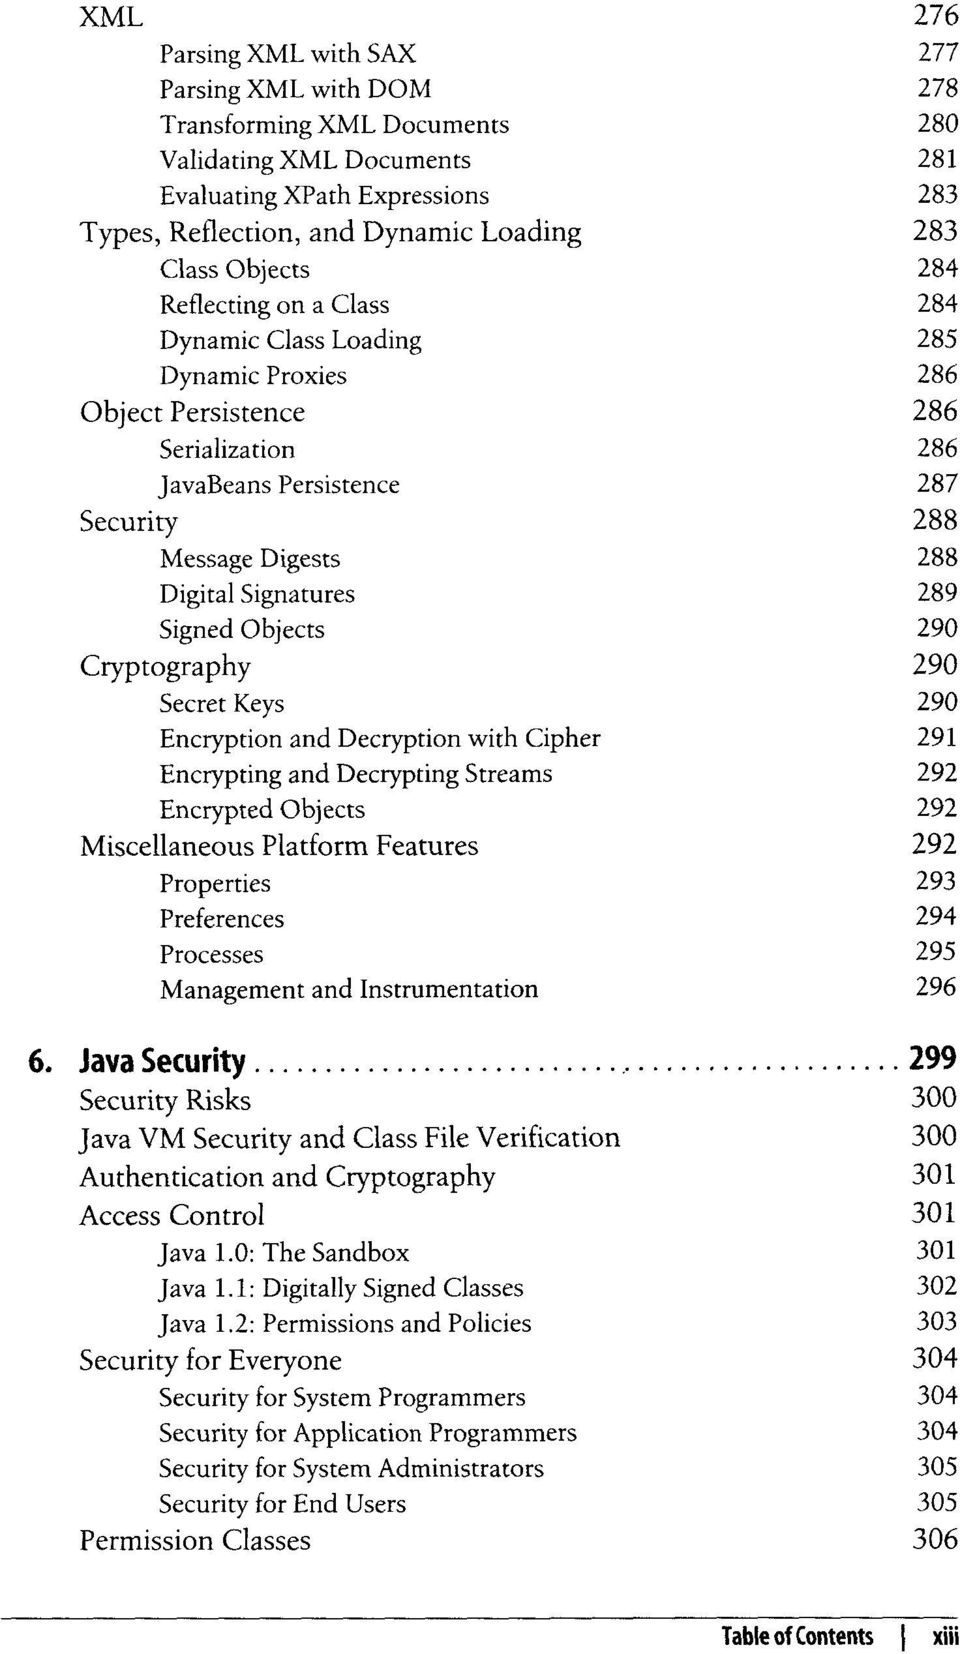 Signatures 289 Signed Objects 290 Cryptography 290 Secret Keys 290 Encryption and Decryption with Cipher 291 Encrypting and Decrypting Streams 292 Encrypted Objects 292 Miscellaneous Platform